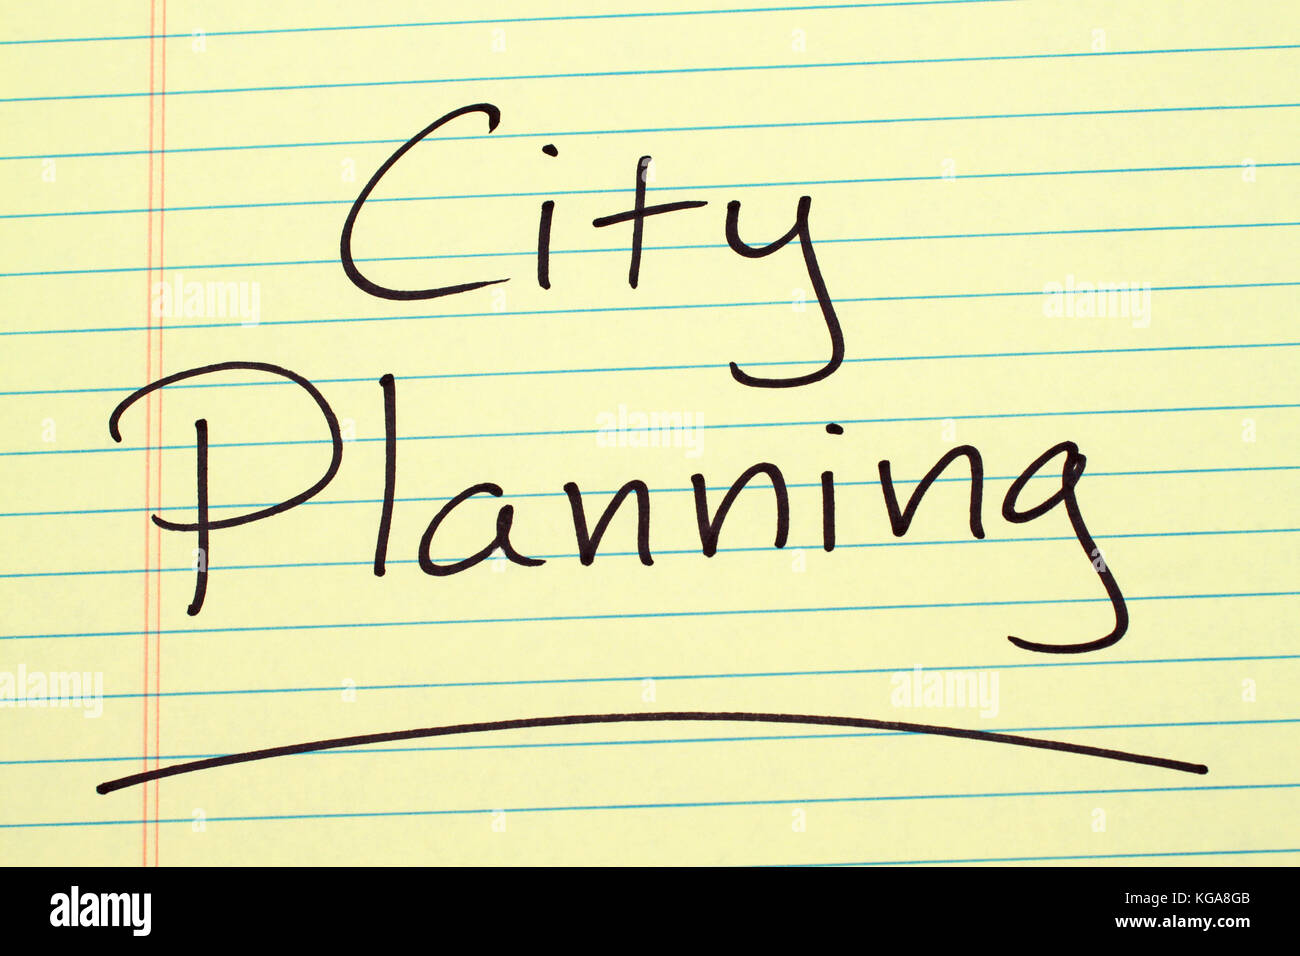 "The word ""City Planning"" underlined on a yellow legal pad Stock Photo"